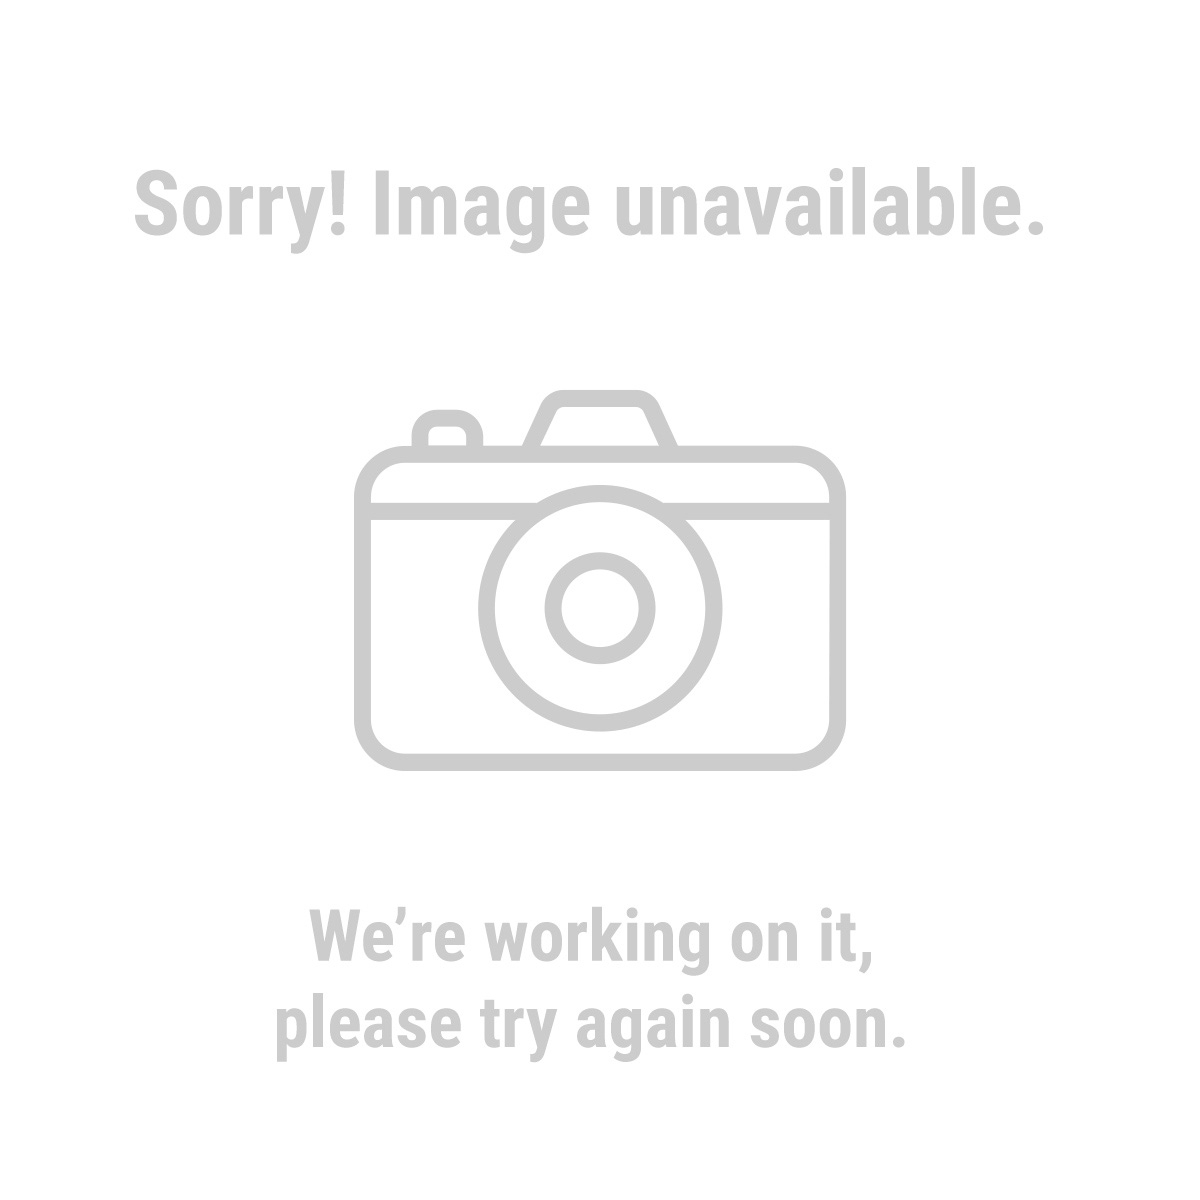 Fasten Pro 62992 Three-Way Tacker Staple Gun Kit